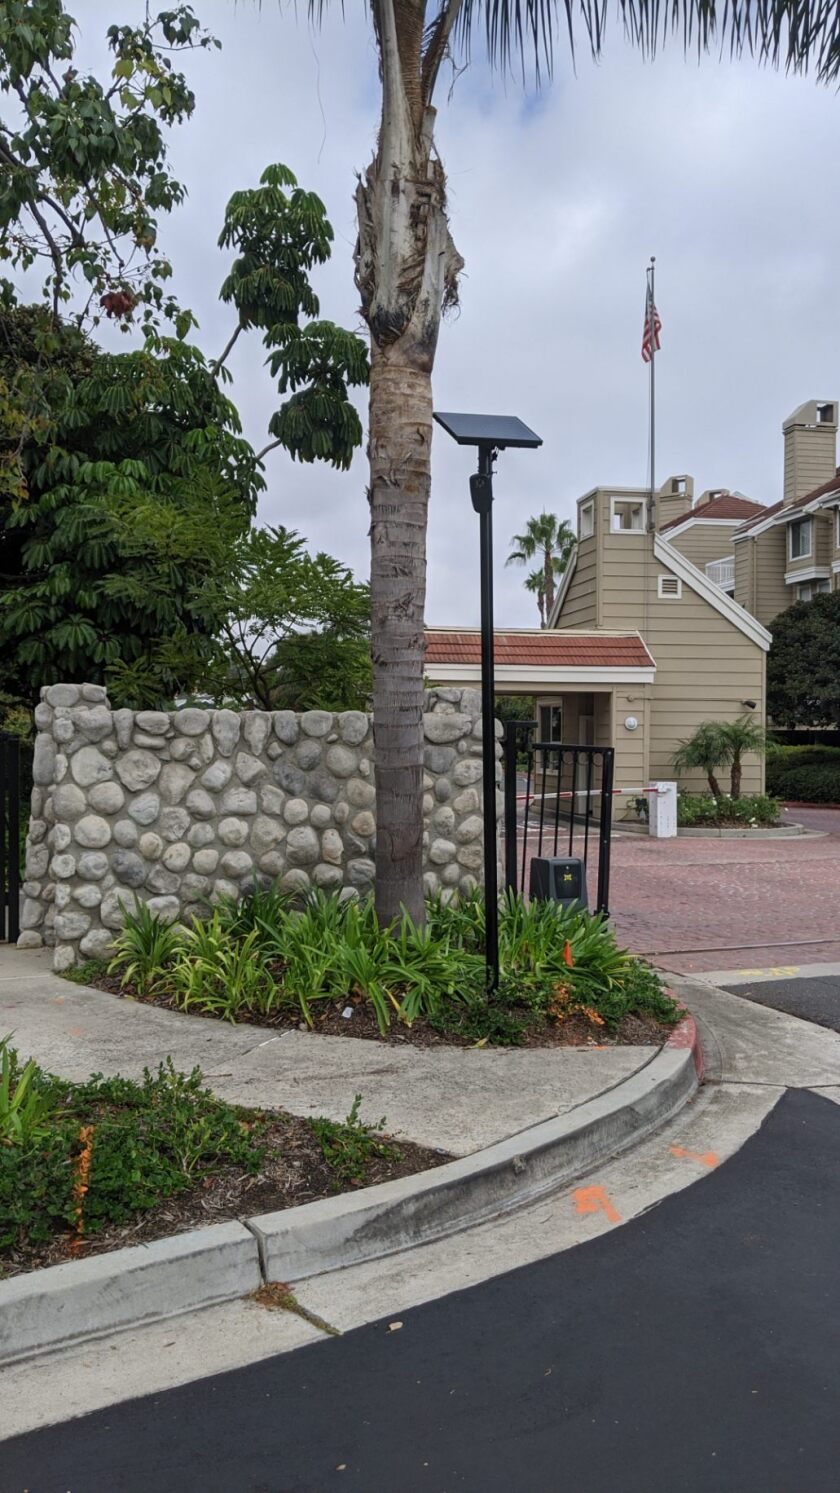 Looking to combat crime, H.B. gated community turns to license plate reading cameras